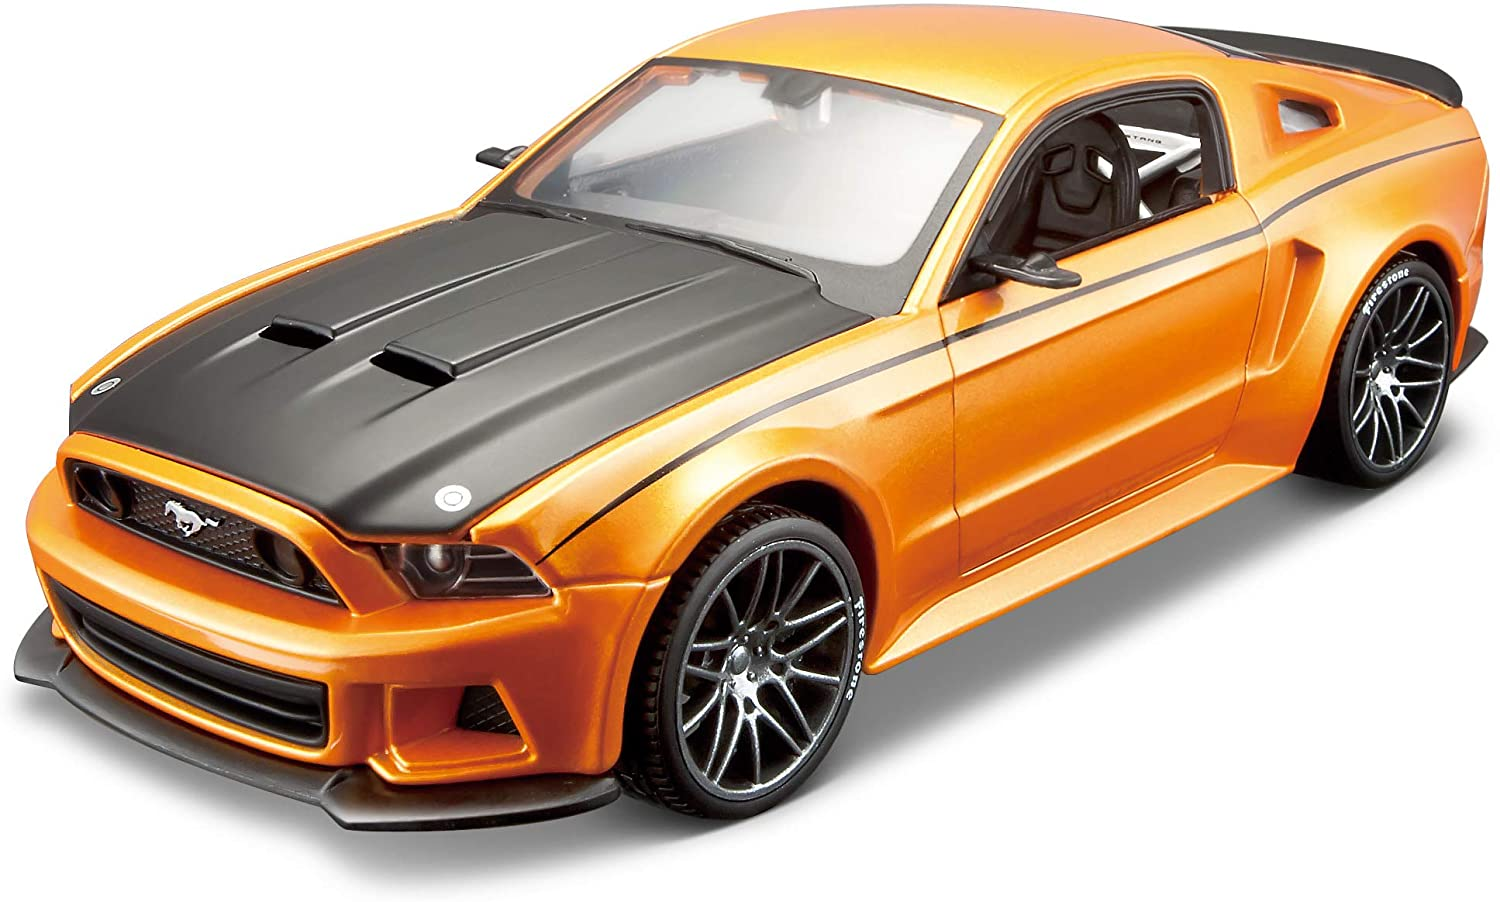 Maisto 1:24 Scale Assembly Line 2014 Ford Mustang Street Racer Diecast Model Kit (Colors May Vary)